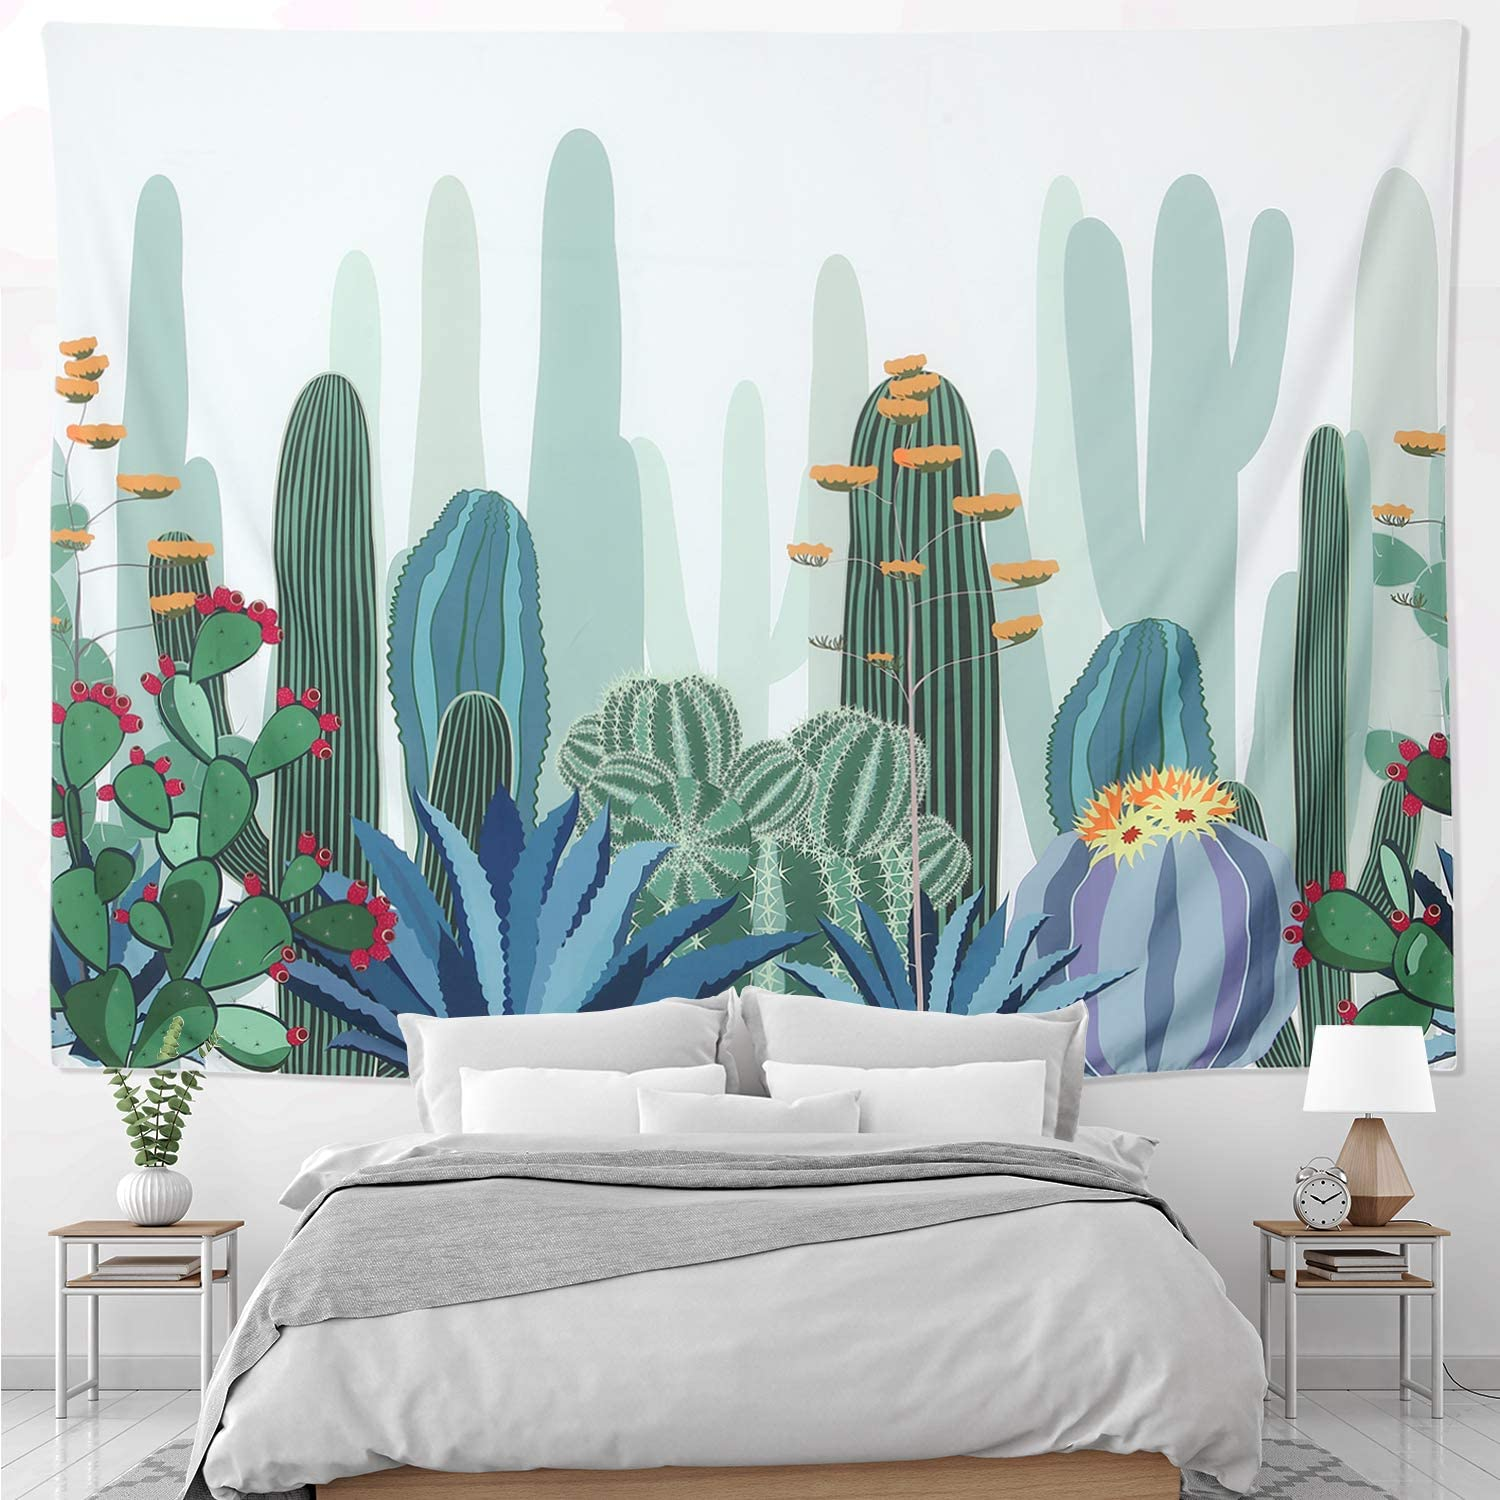 HOMKUMY Cactus Wall Tapestry, Bohemian Hippie Tapestry Psychedelic Indian Wall Hanging Tapestry for Home Decor Bedroom Living Room, Medium 59x51 Inches